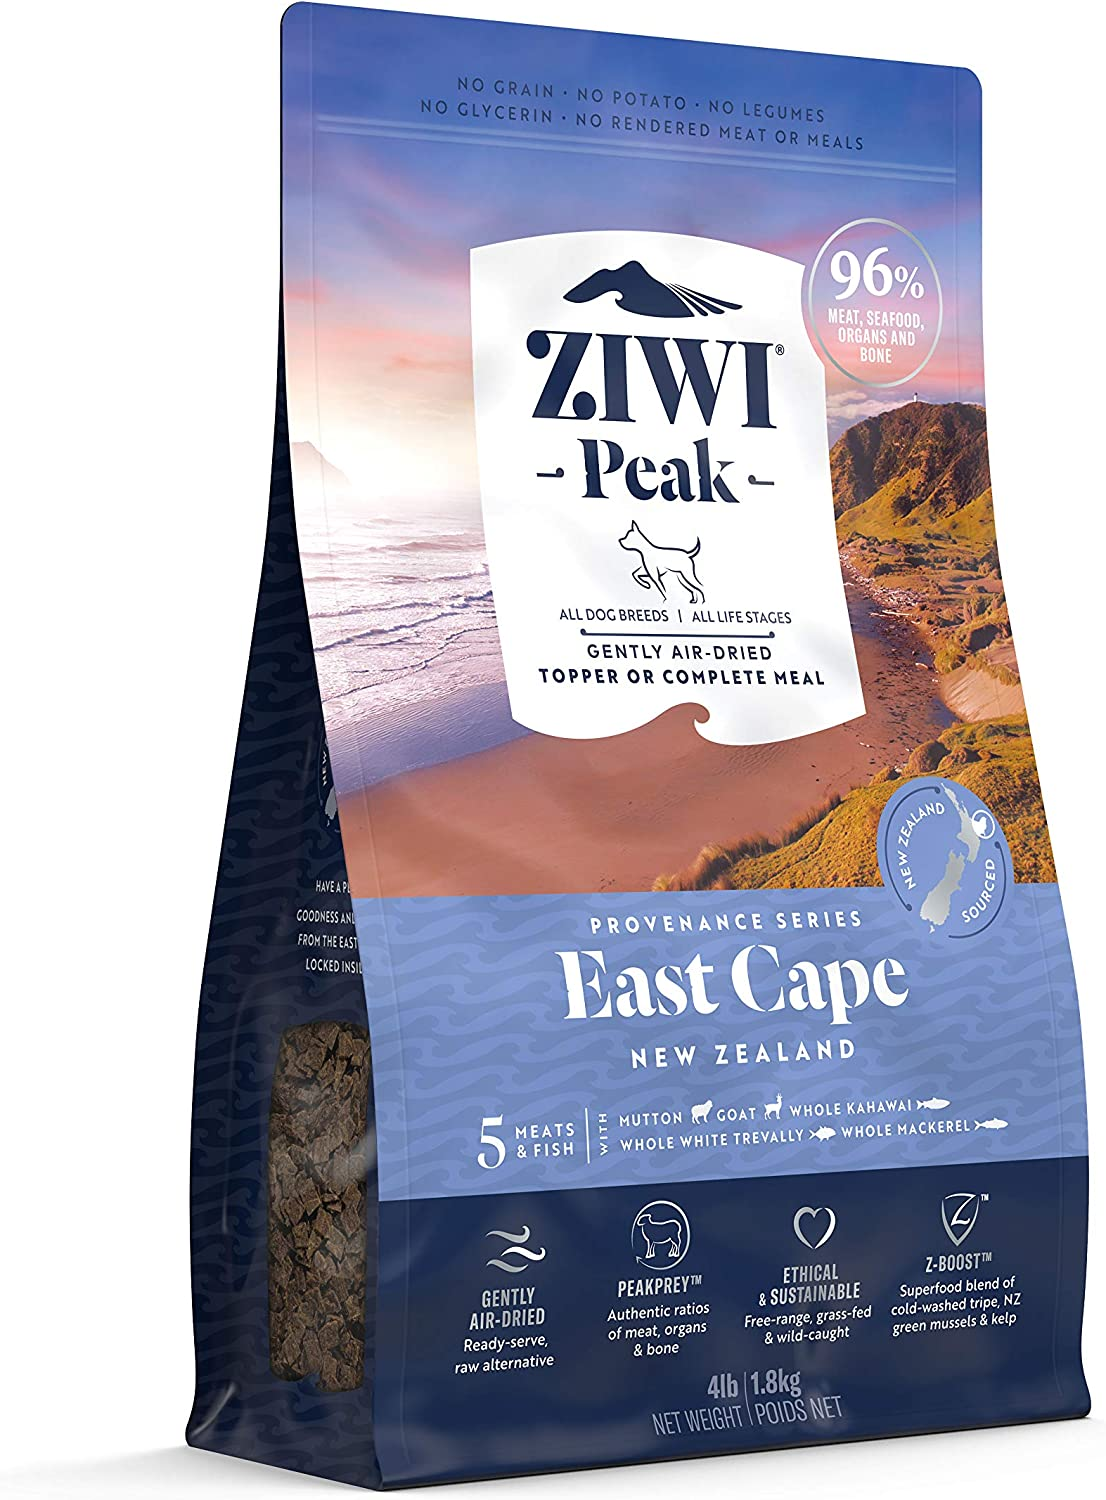 ZIWI Peak Provenance Air-Dried Dog Food – All Natural, High Protein, Grain Free with Superfoods